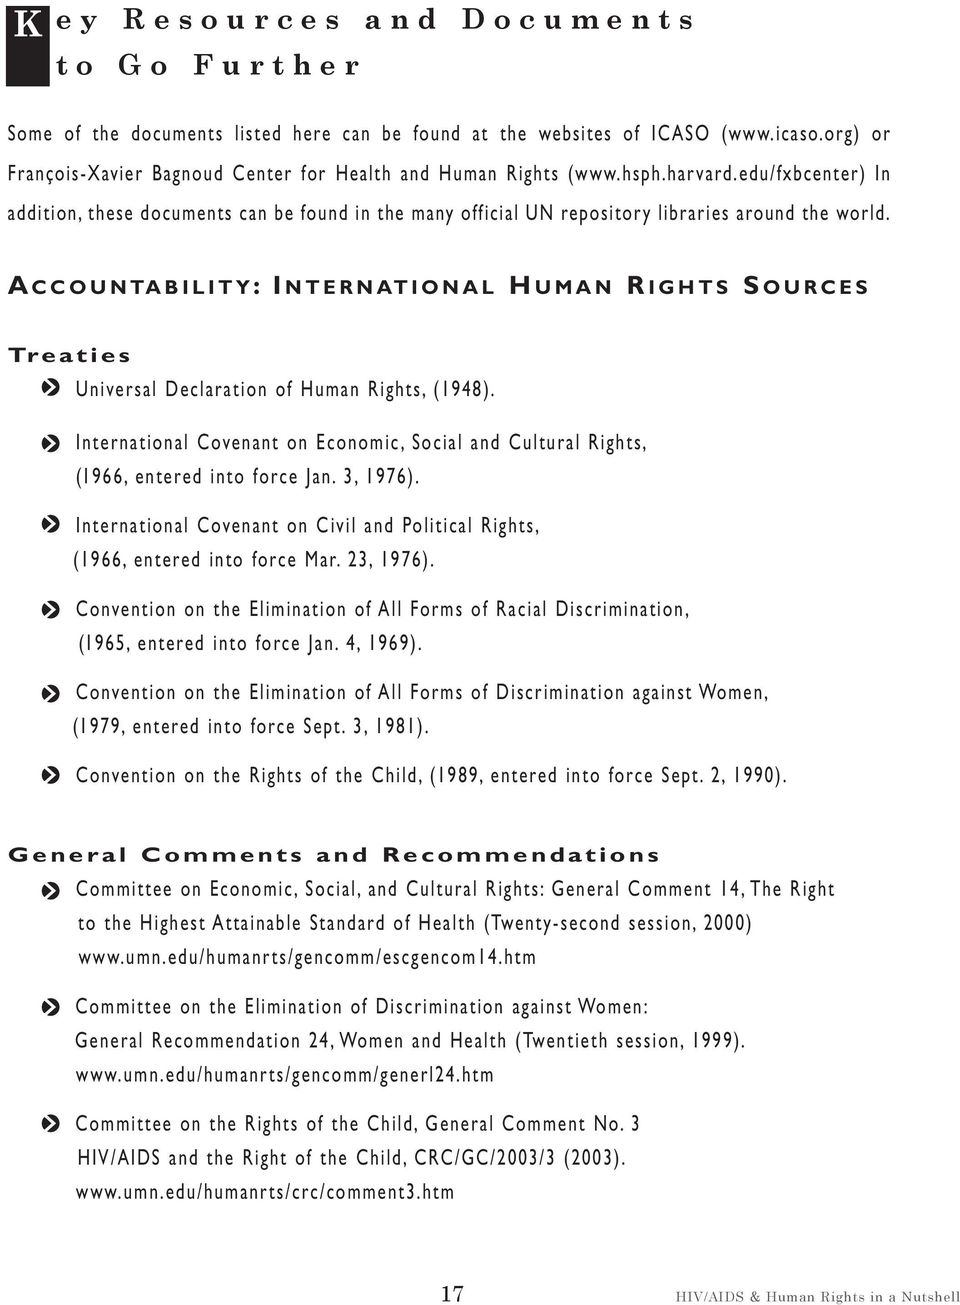 A CCOUNTABILITY:INTERNATIONAL H UMAN R IGHTS S OURCES Treaties Universal Declaratin f Human Rights, (1948). Internatinal Cvenant n Ecnmic, Scial an Cultural Rights, (1966, entere int frce Jan.